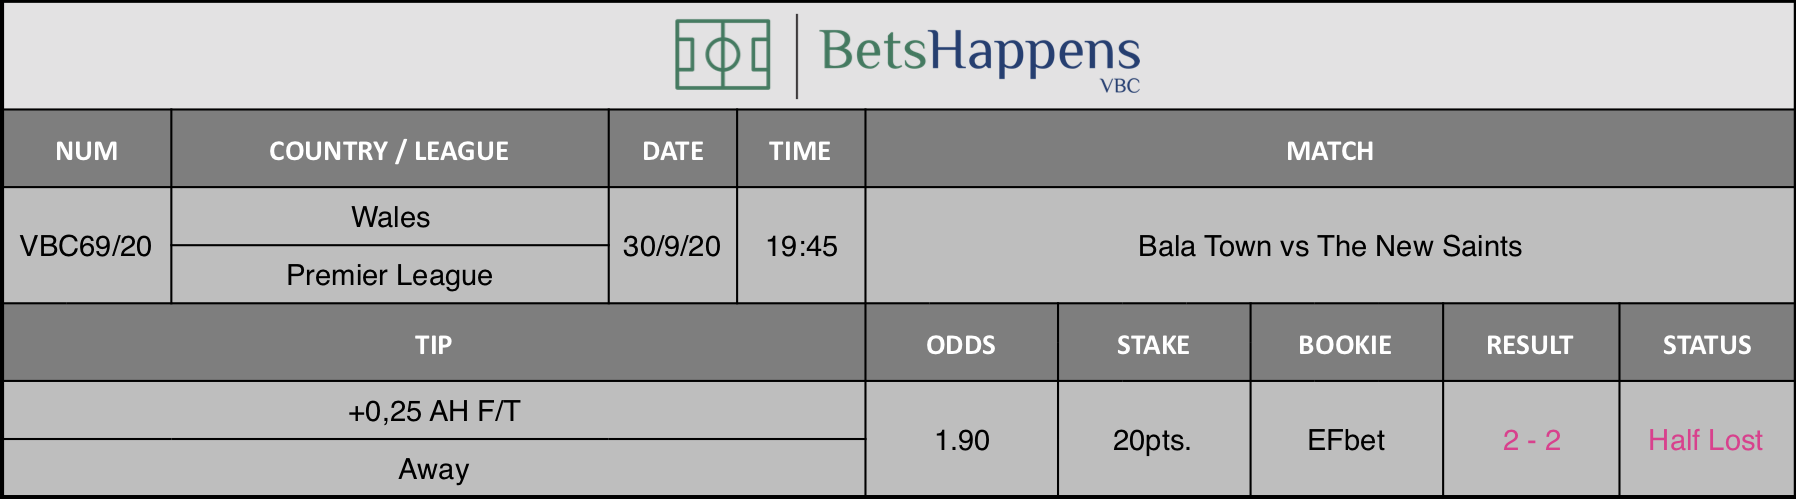 Results of our tip for the Bala Town vs The New Saints match where +0.25 AH F / T Away is recommended.